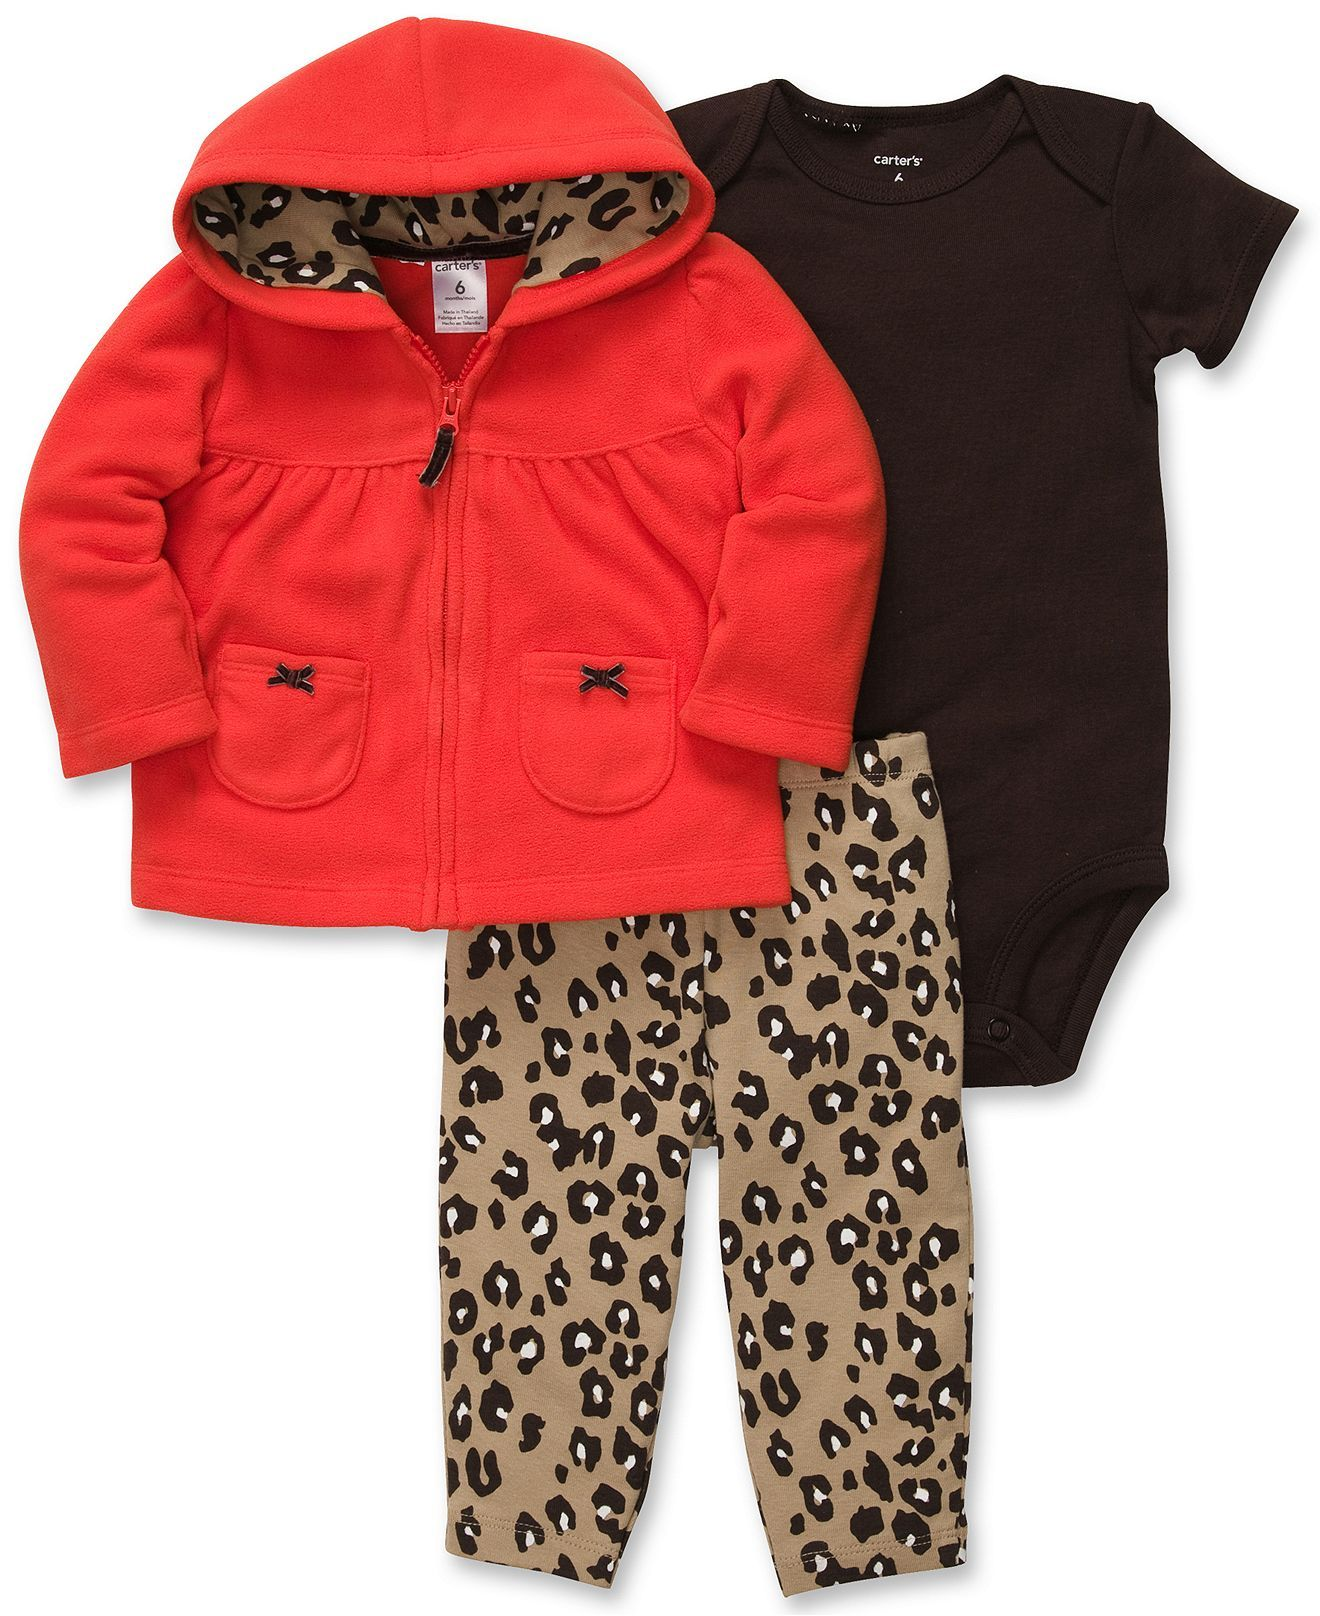 Carter's Baby Set, Baby Girls 3-Piece Cardigan, Bodysuit and Pants ...